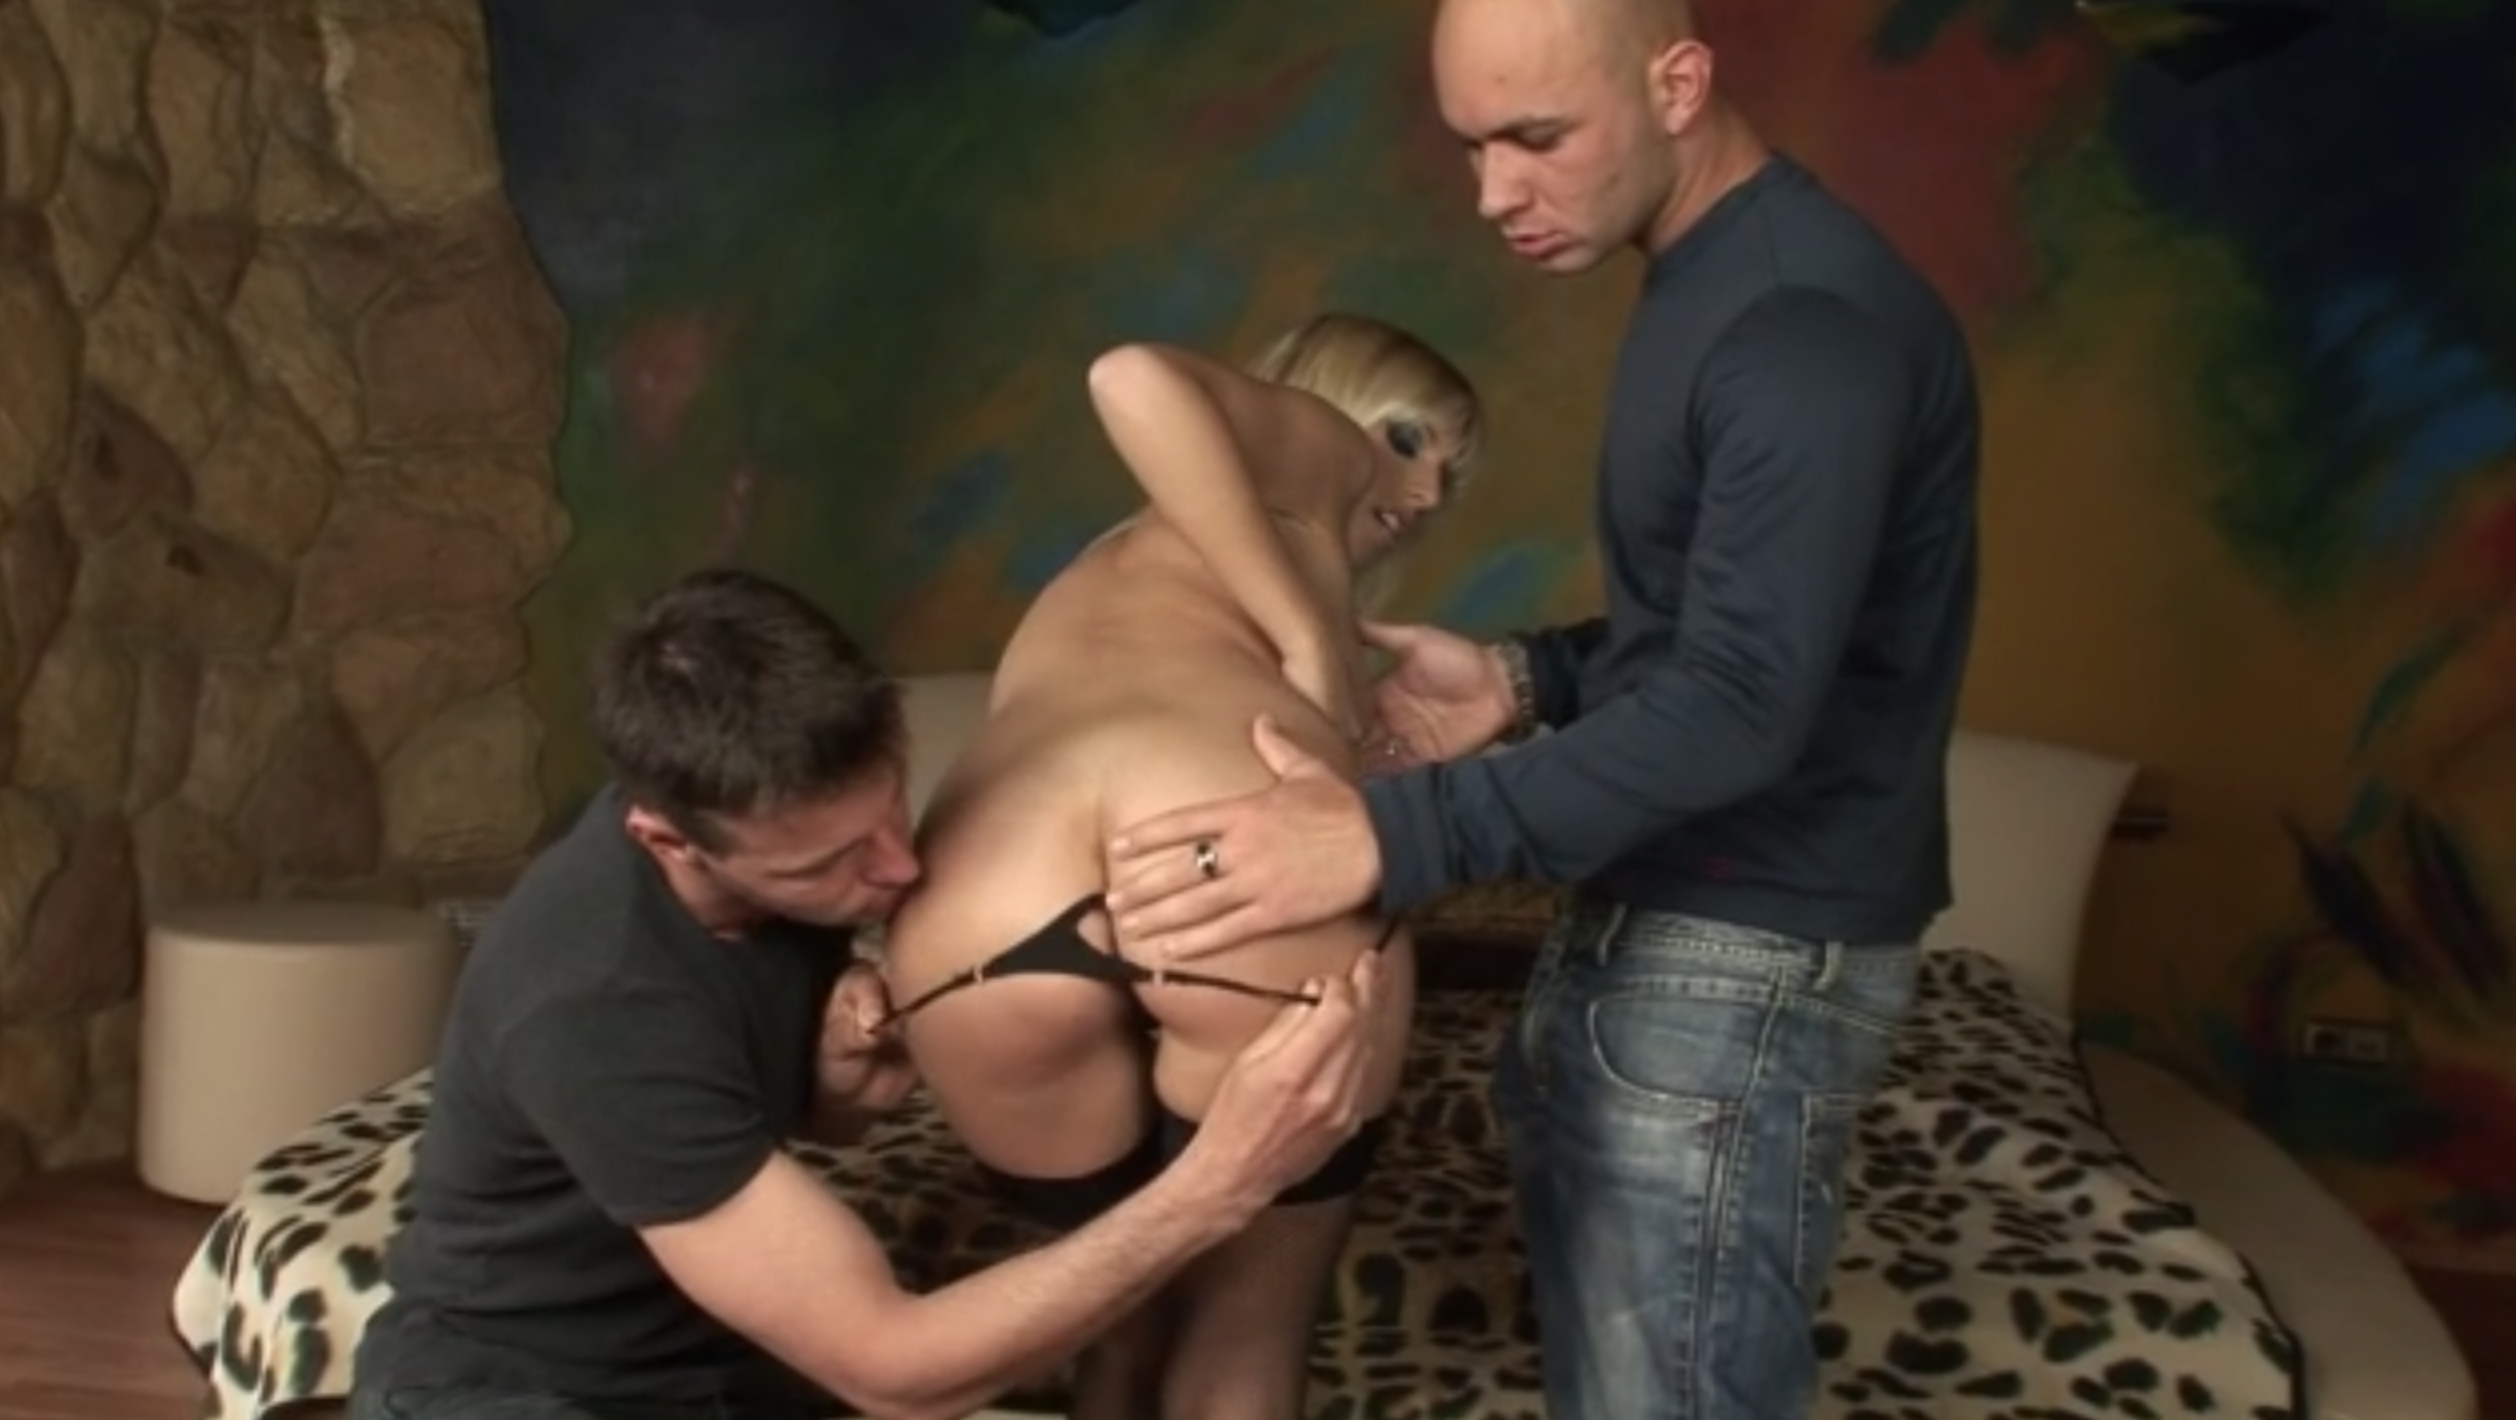 Hot blonde double penetrated by two large cocks